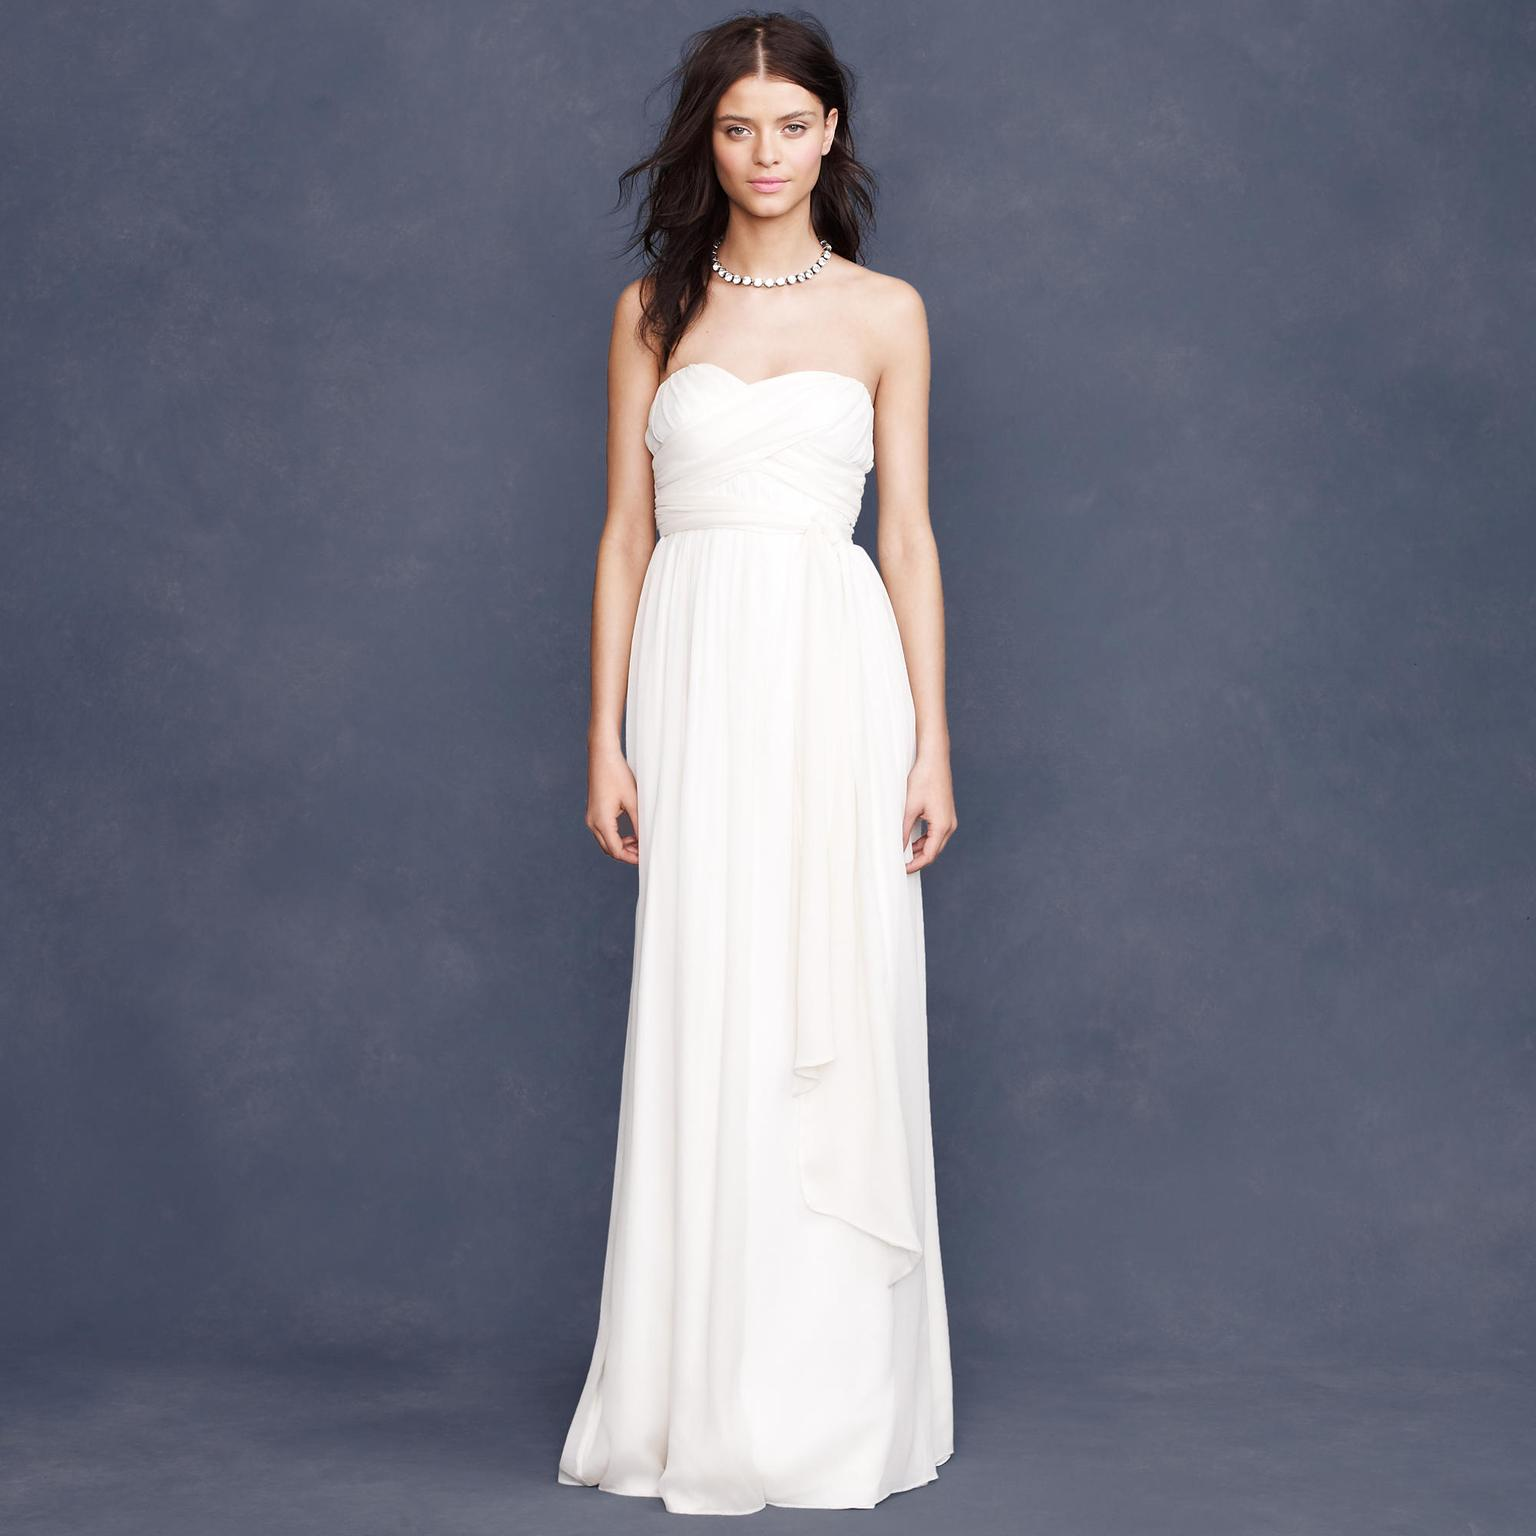 J Crew Taryn 195 Size 4 New Un Altered Wedding